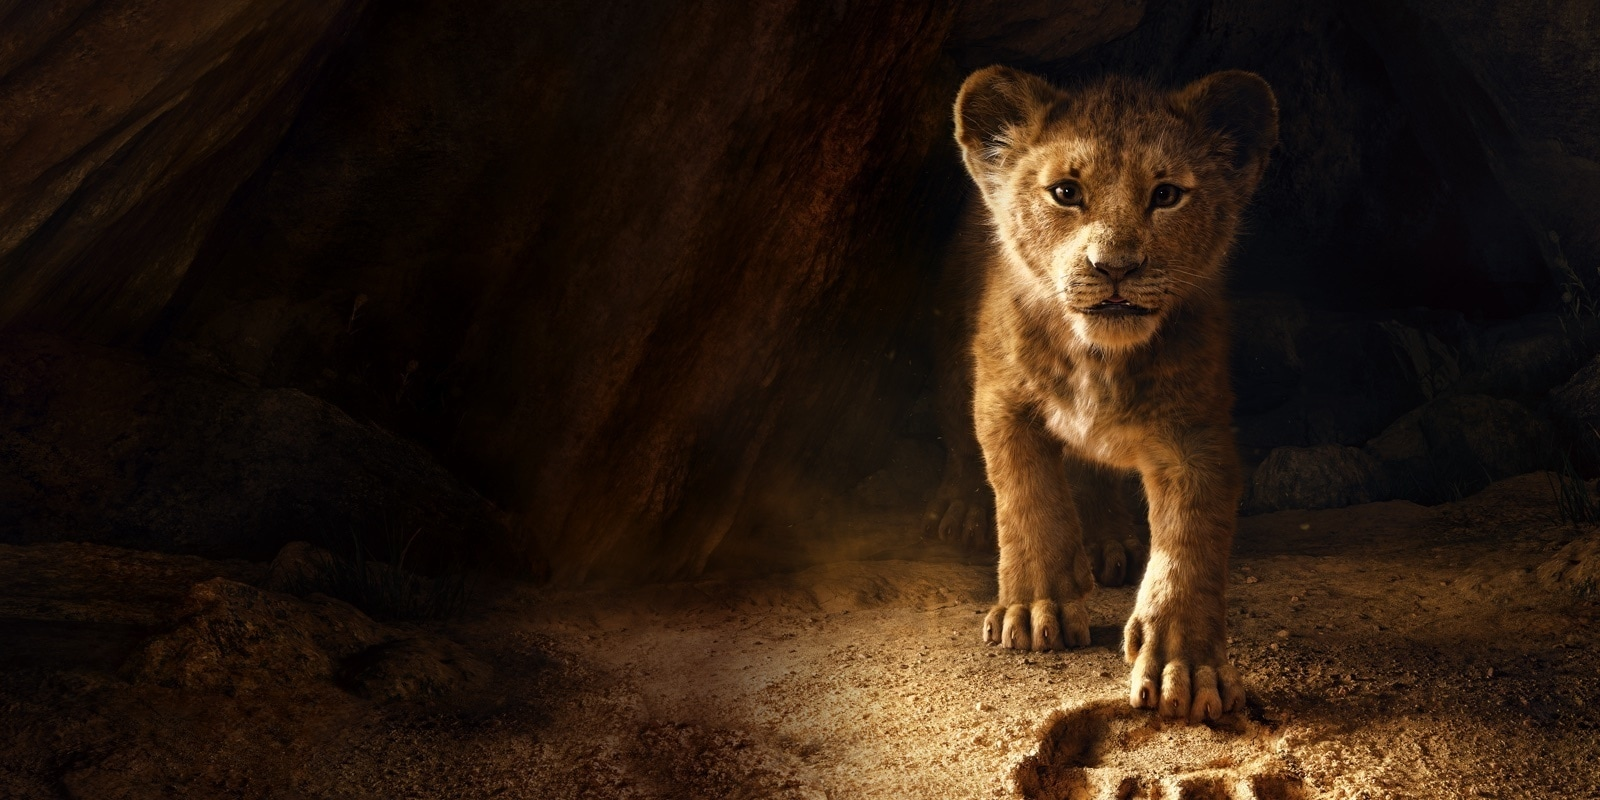 The Lion King ملخص فيلم دمبو